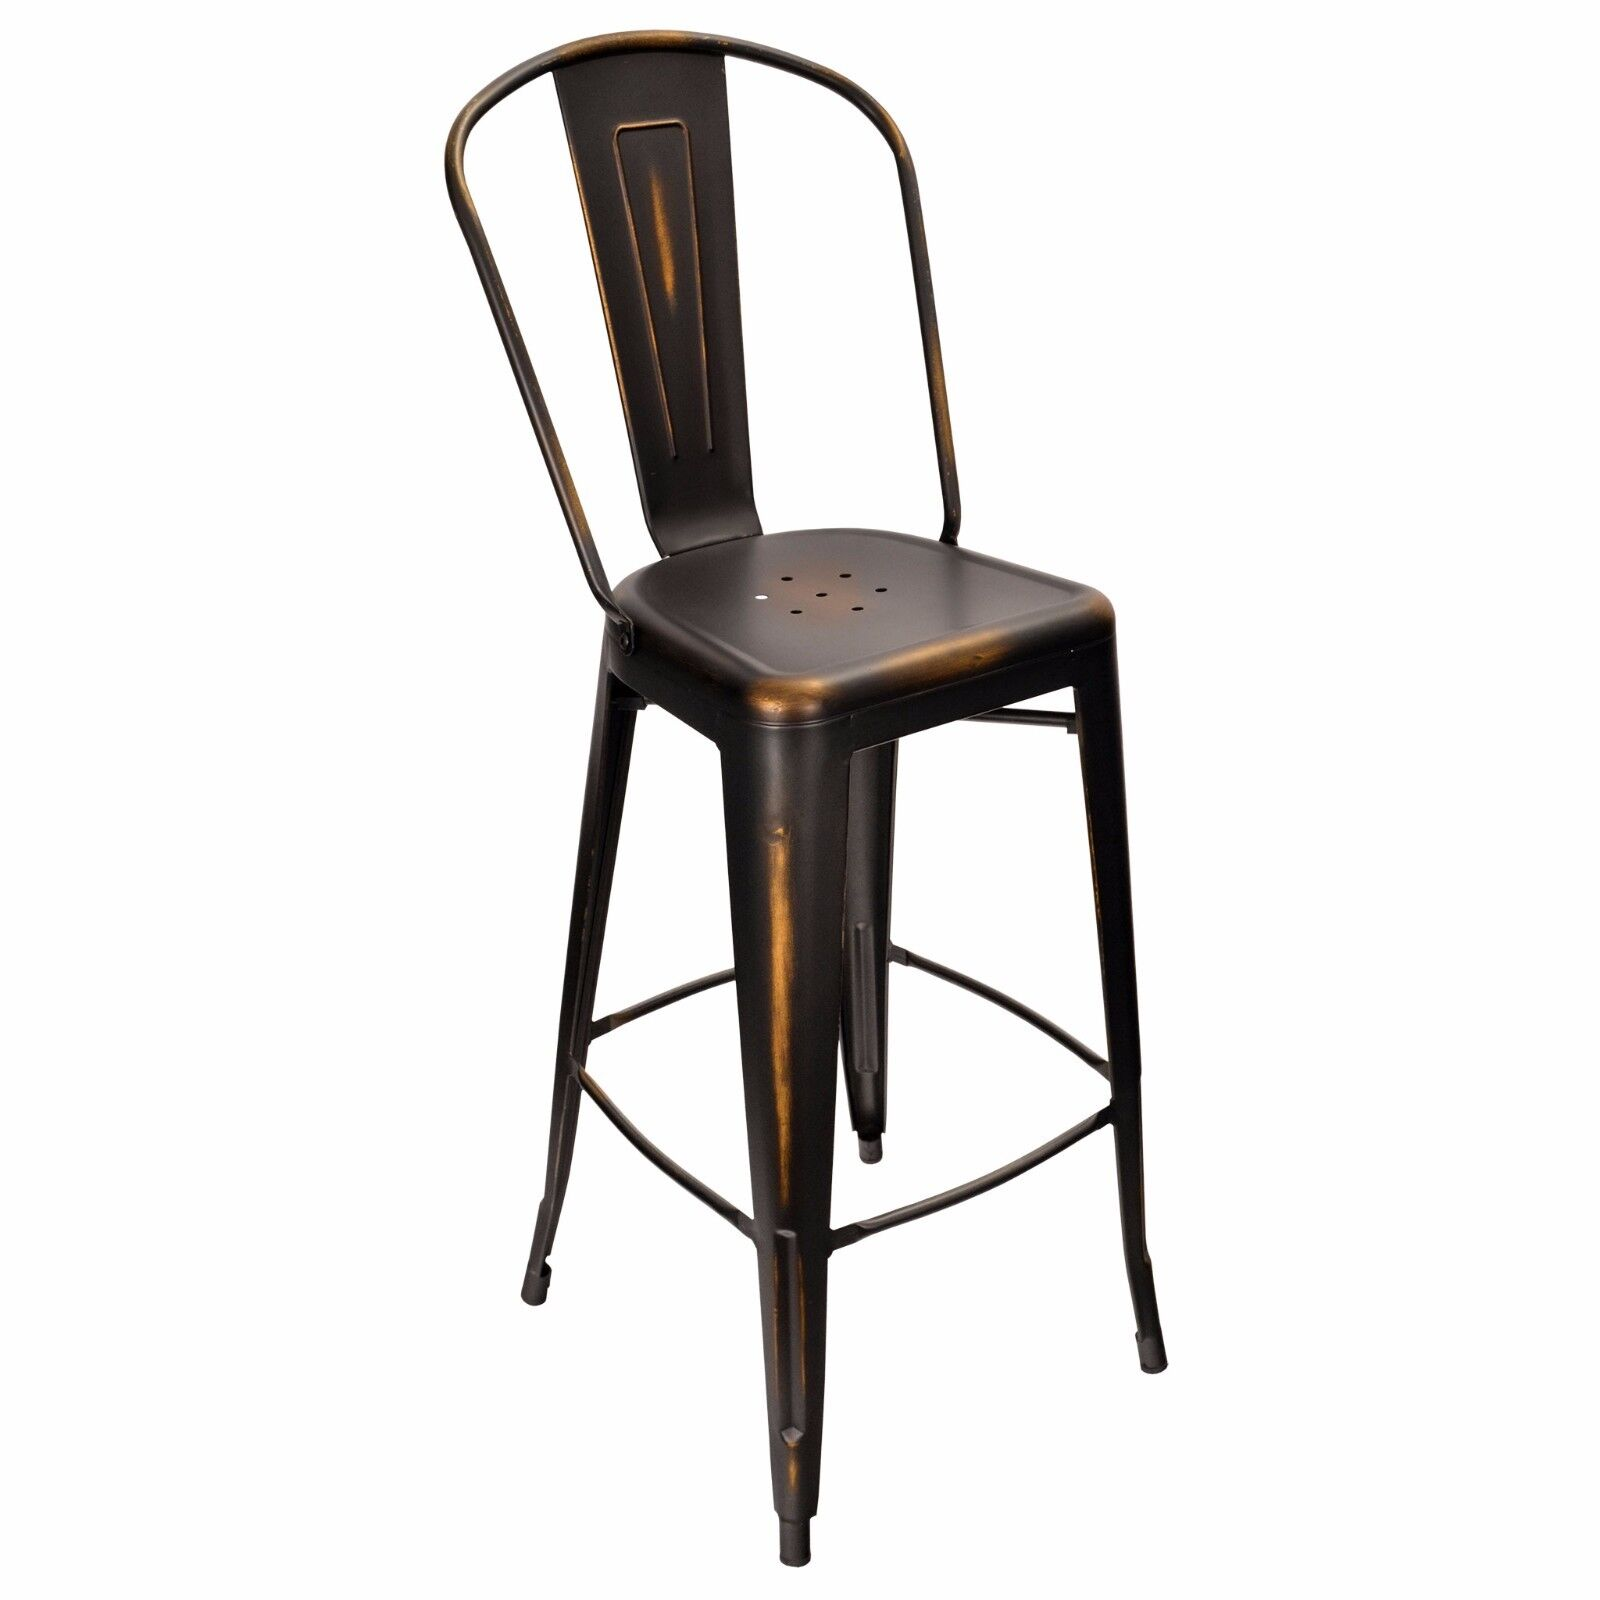 Peachy Details About New Viktor Steel Restaurant Bar Stool With Distressed Black Finish Spiritservingveterans Wood Chair Design Ideas Spiritservingveteransorg